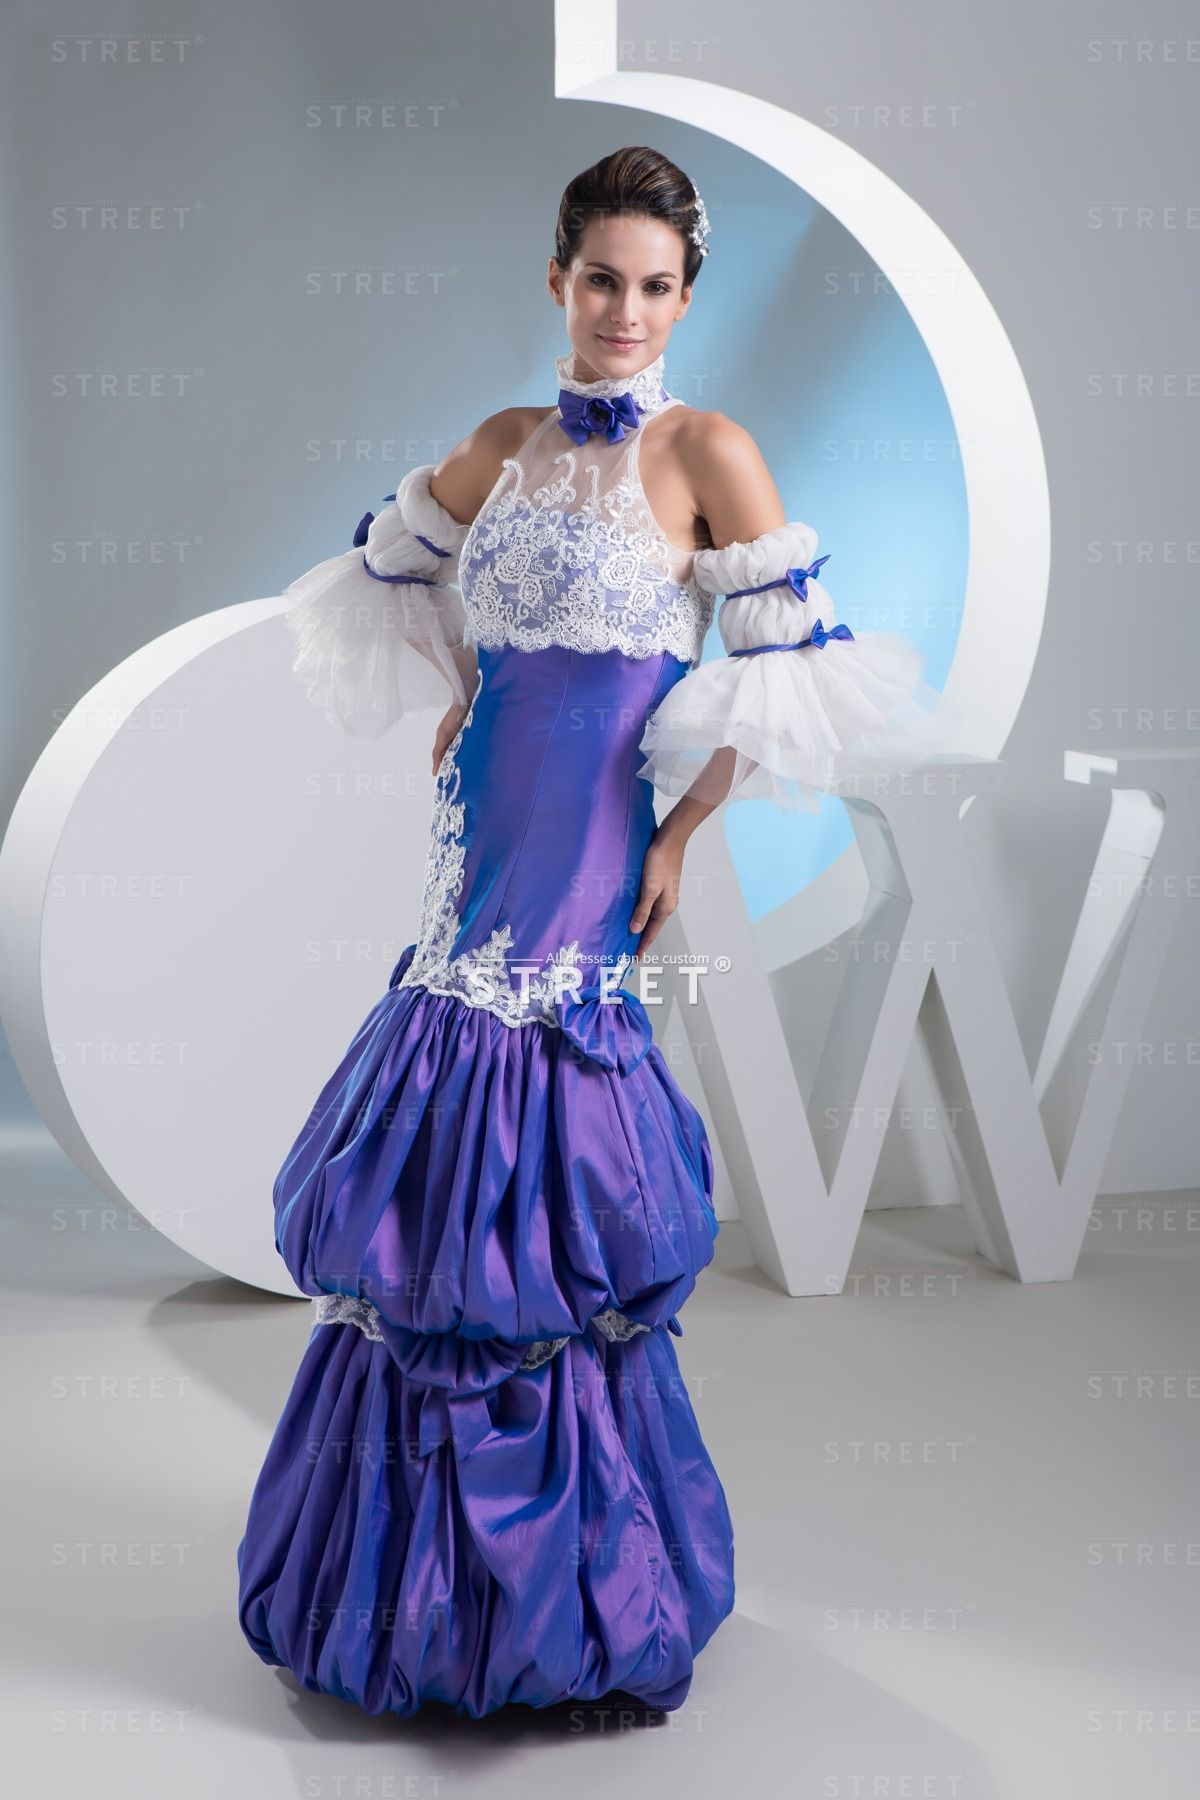 Lace dresses for prom uk